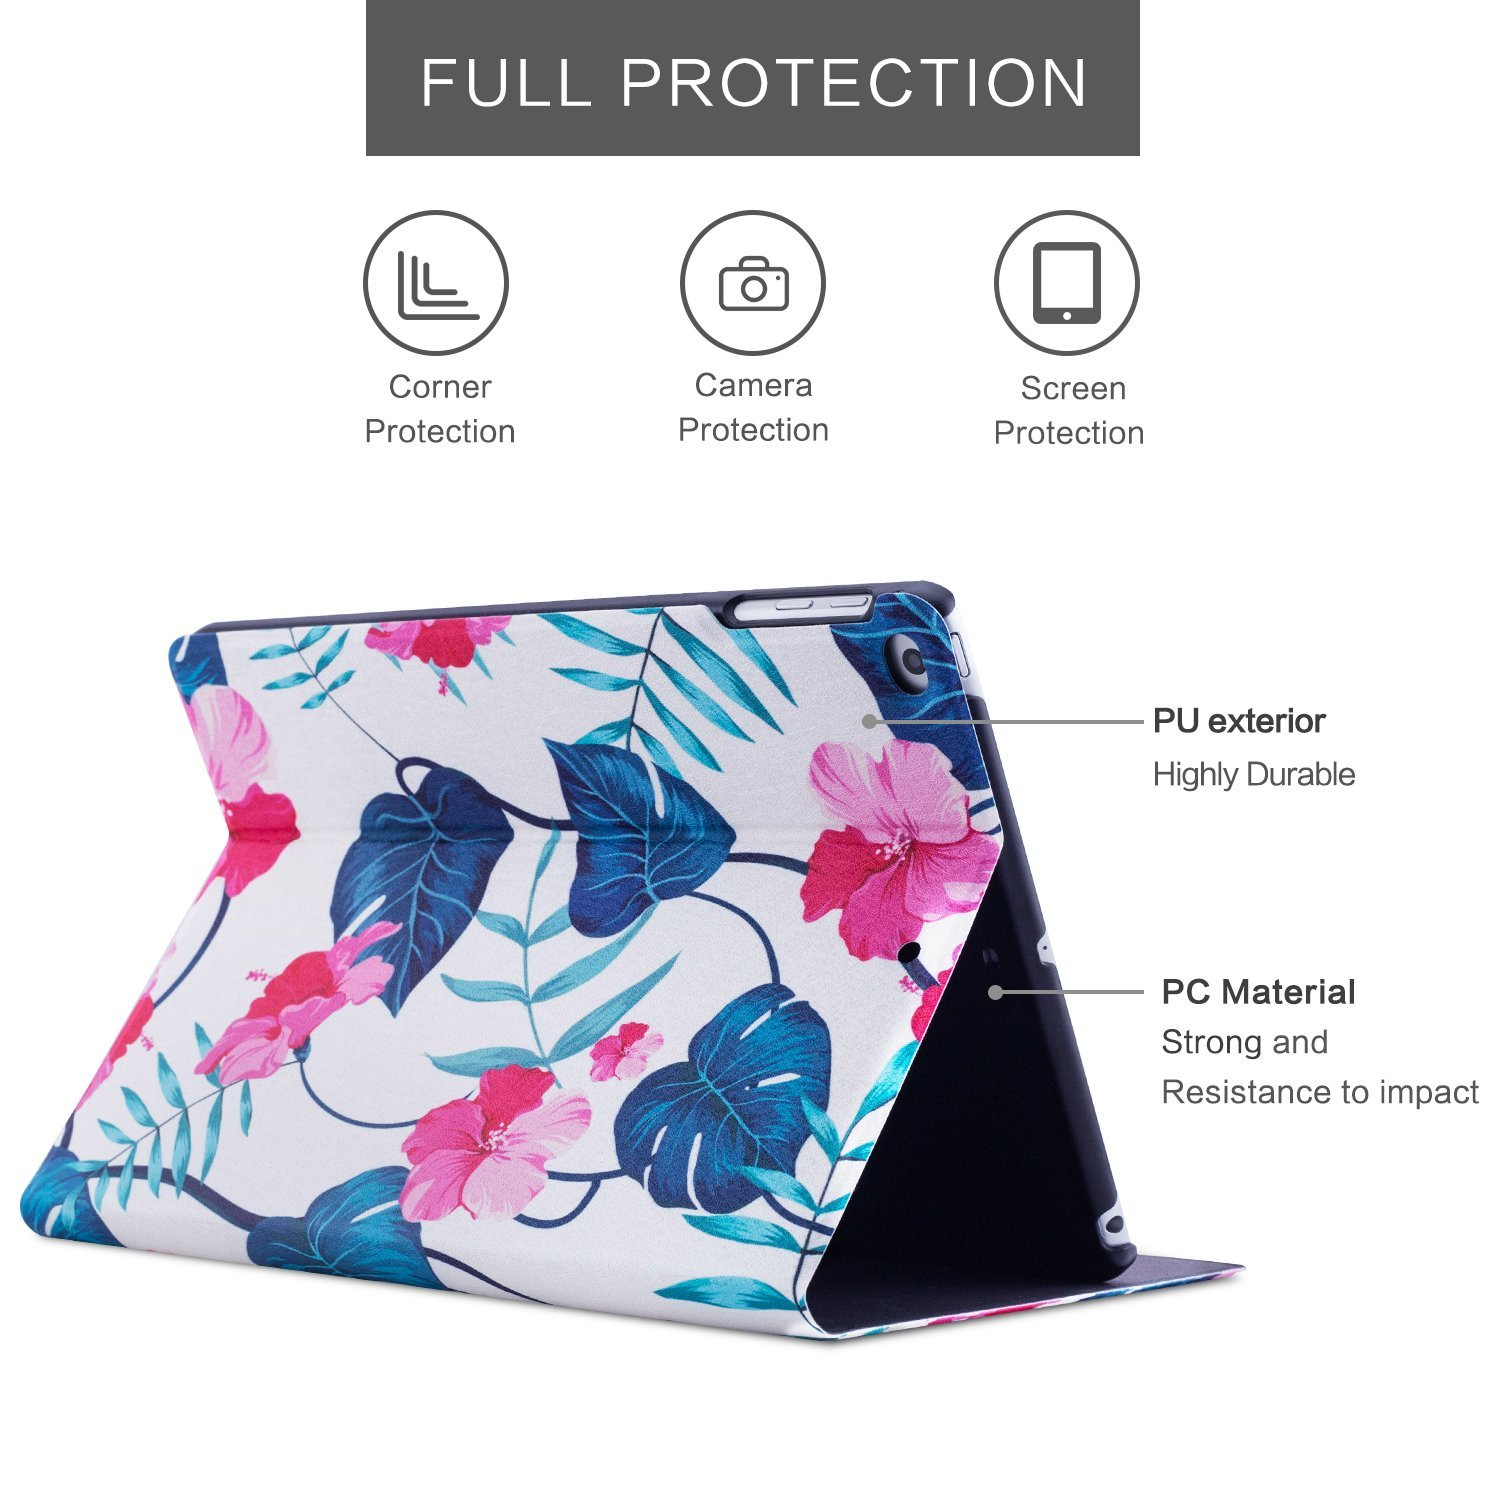 New iPad 9.7 inch 2018/2017 Case, Dopup Premium Leather Case, Protective hard shell Cover for Apple iPad Air Air 2 ipad 6th Generation 5th Generation with Auto Wake/Sleep (Pink Flower)